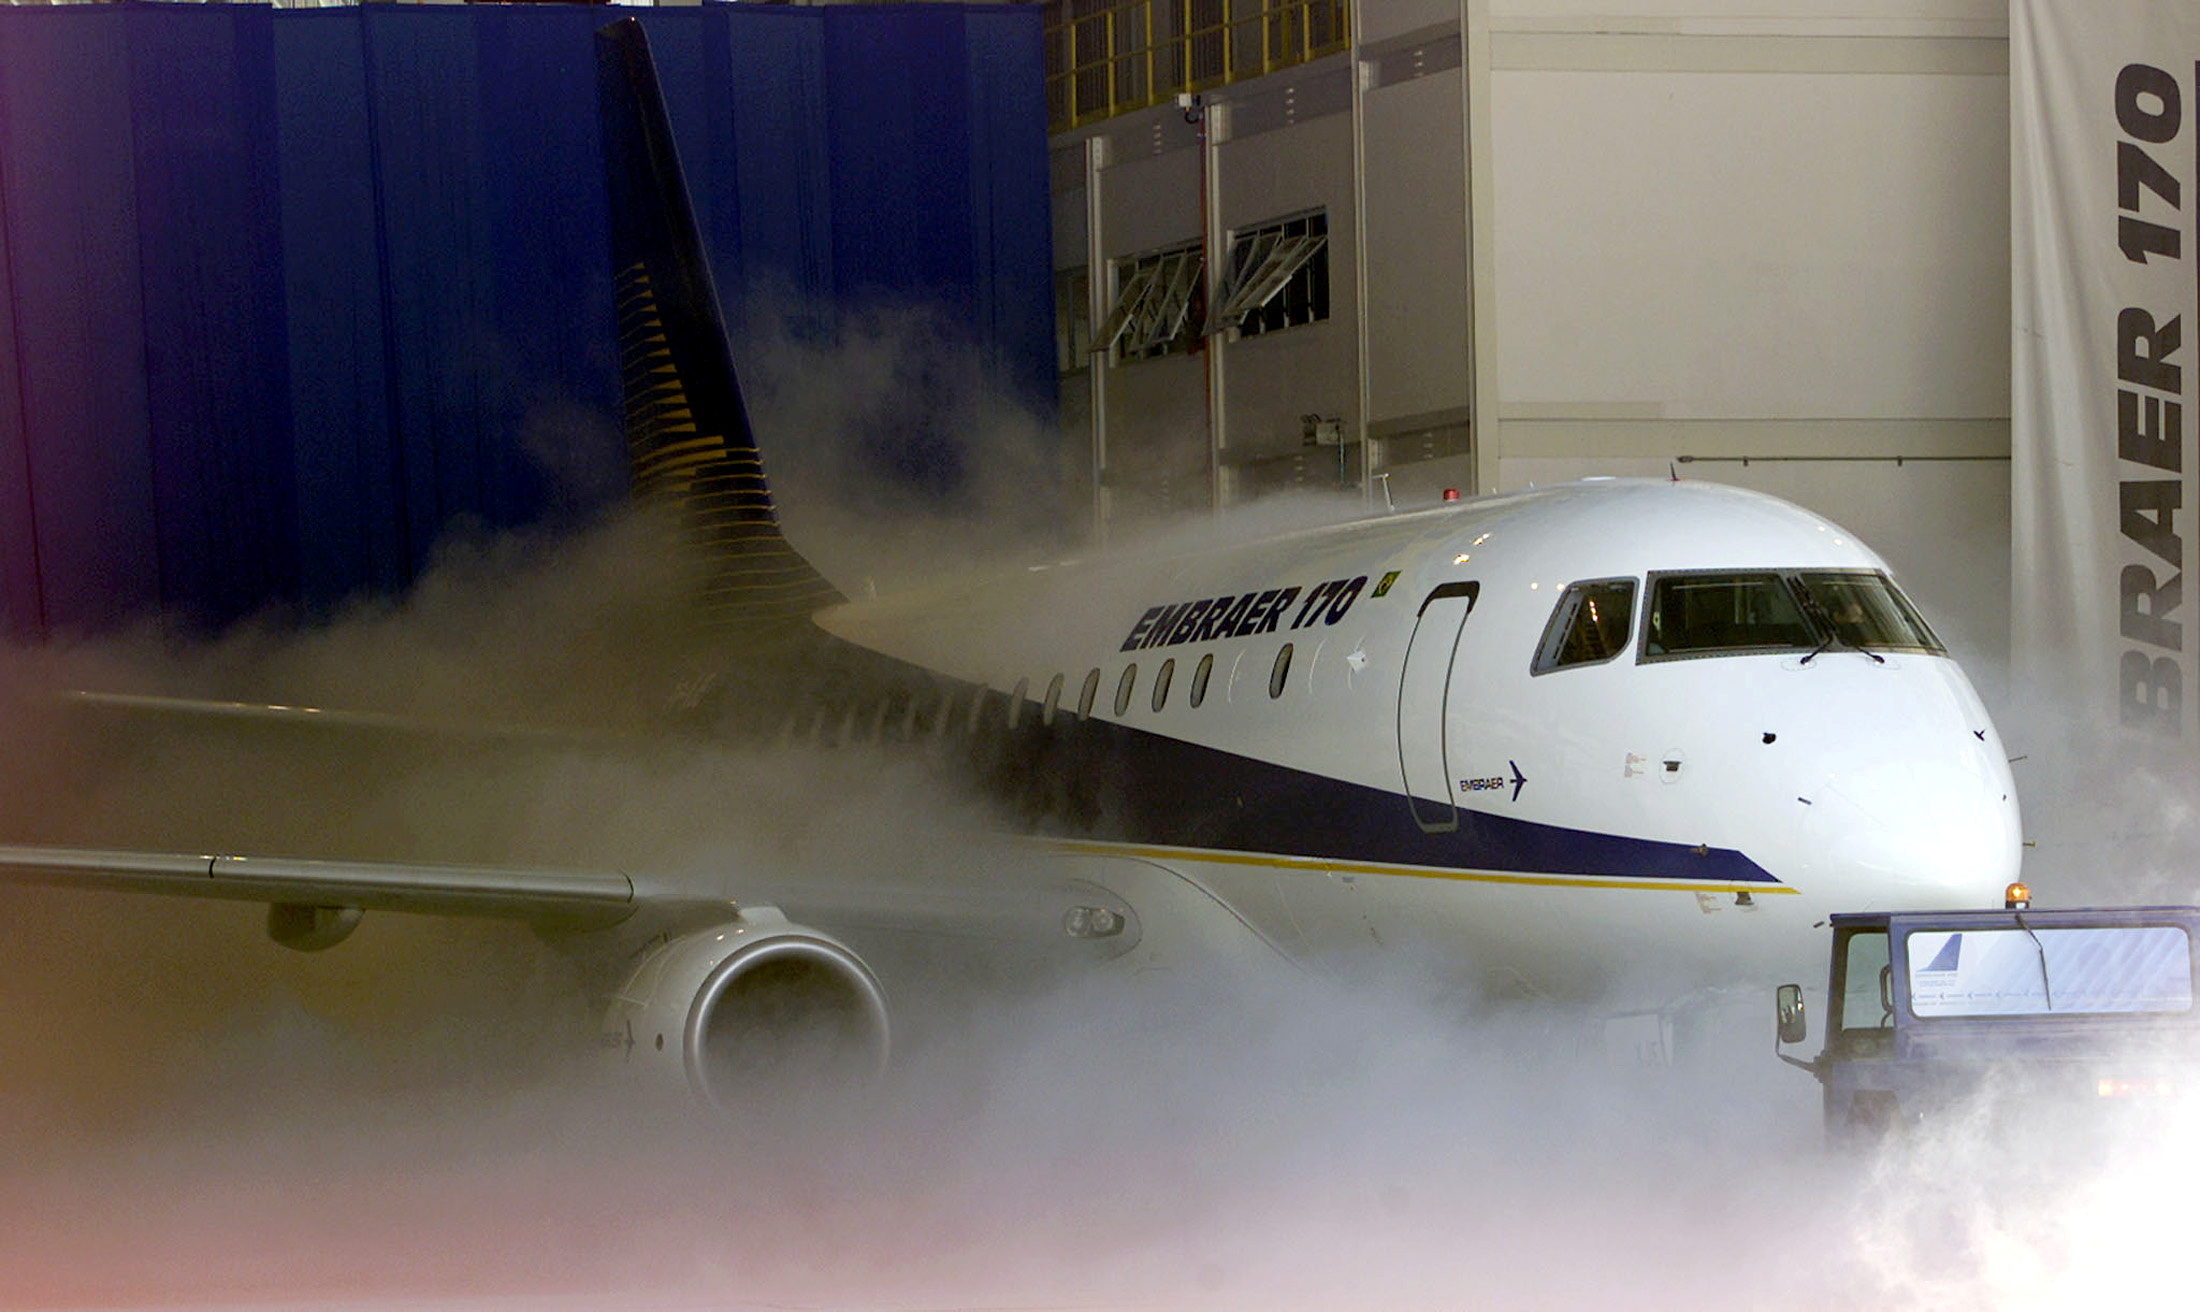 File photo showing the unveiling of Brazilian aircraft manufacturer Embraer of its regional jet EMB-170, able to carry seventy passengers, in Sao Jose dos Campos on October 29, 2001. REUTERS/Paulo Whitaker/File Photo